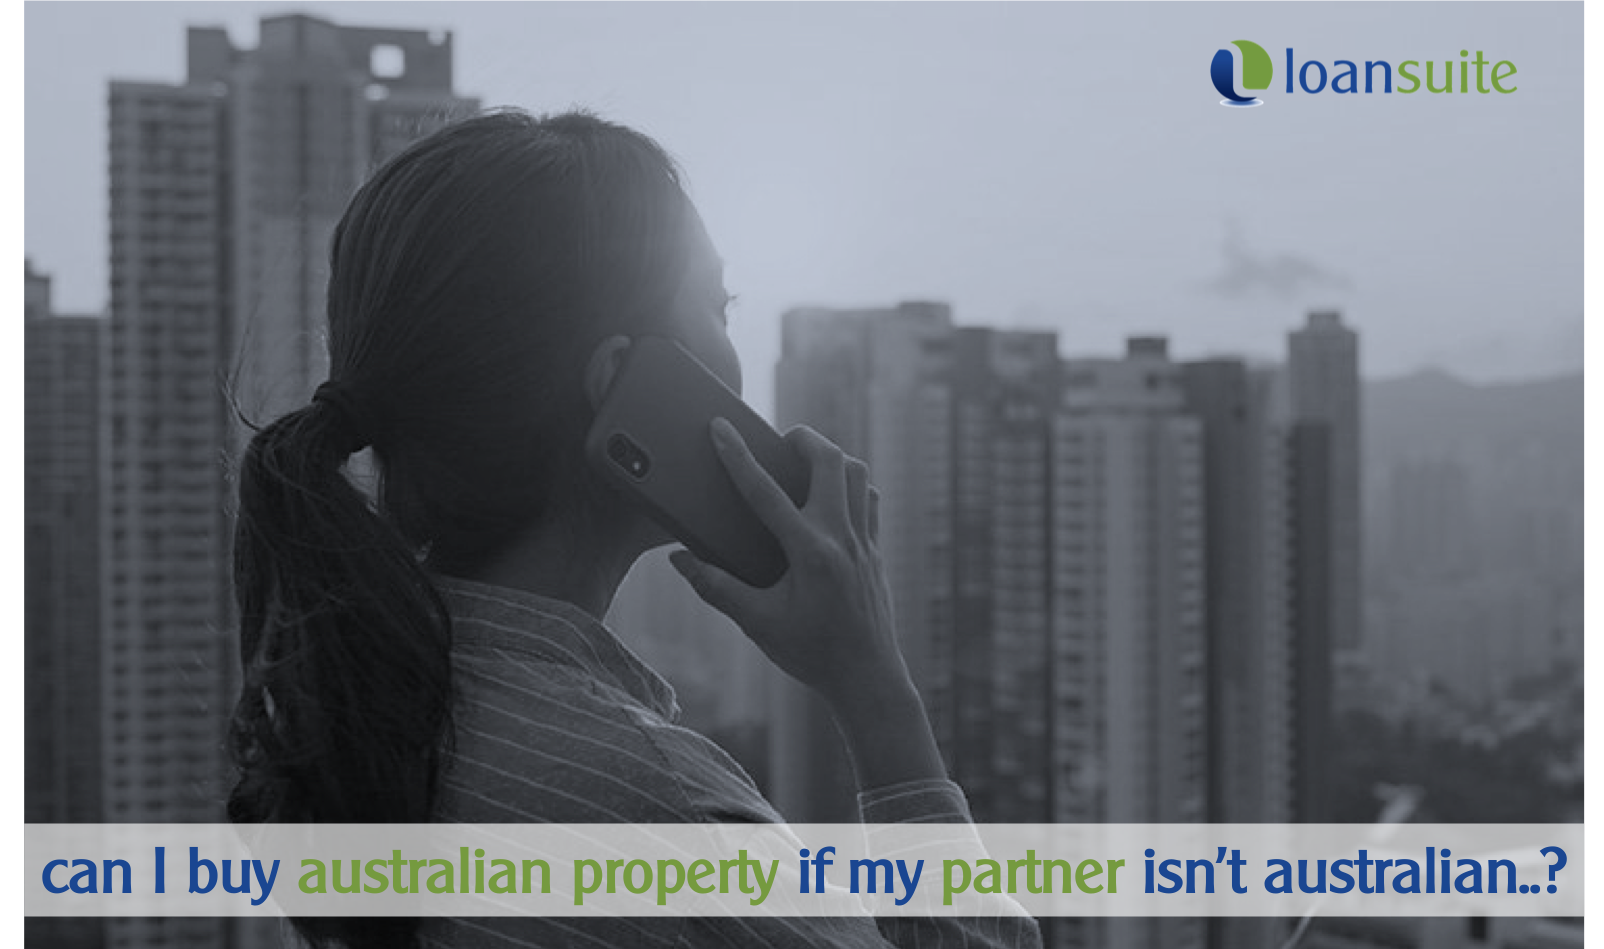 Buying Australian Property as Foreigner - Loansuite - Mortgage Brokers